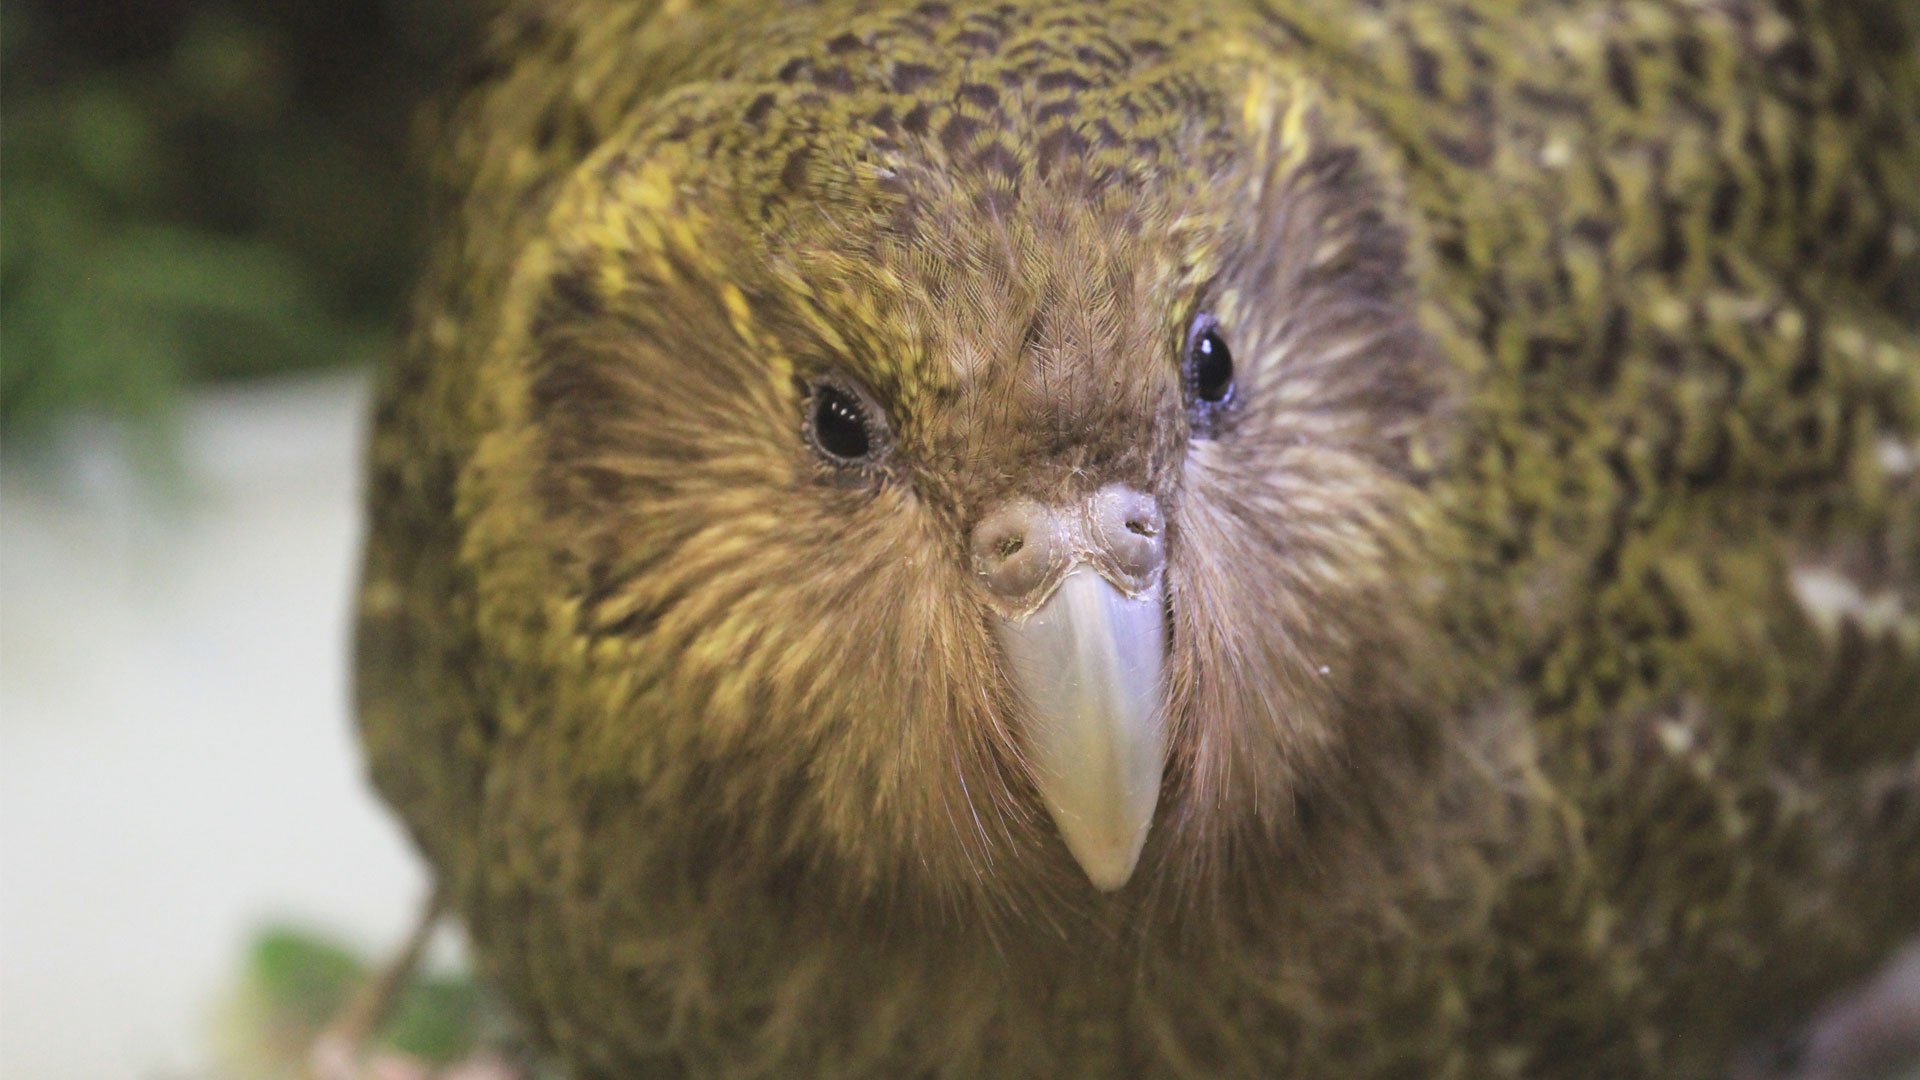 https://rfacdn.nz/zoo/assets/media/kakapo-komaru-kids-gallery-3.jpg